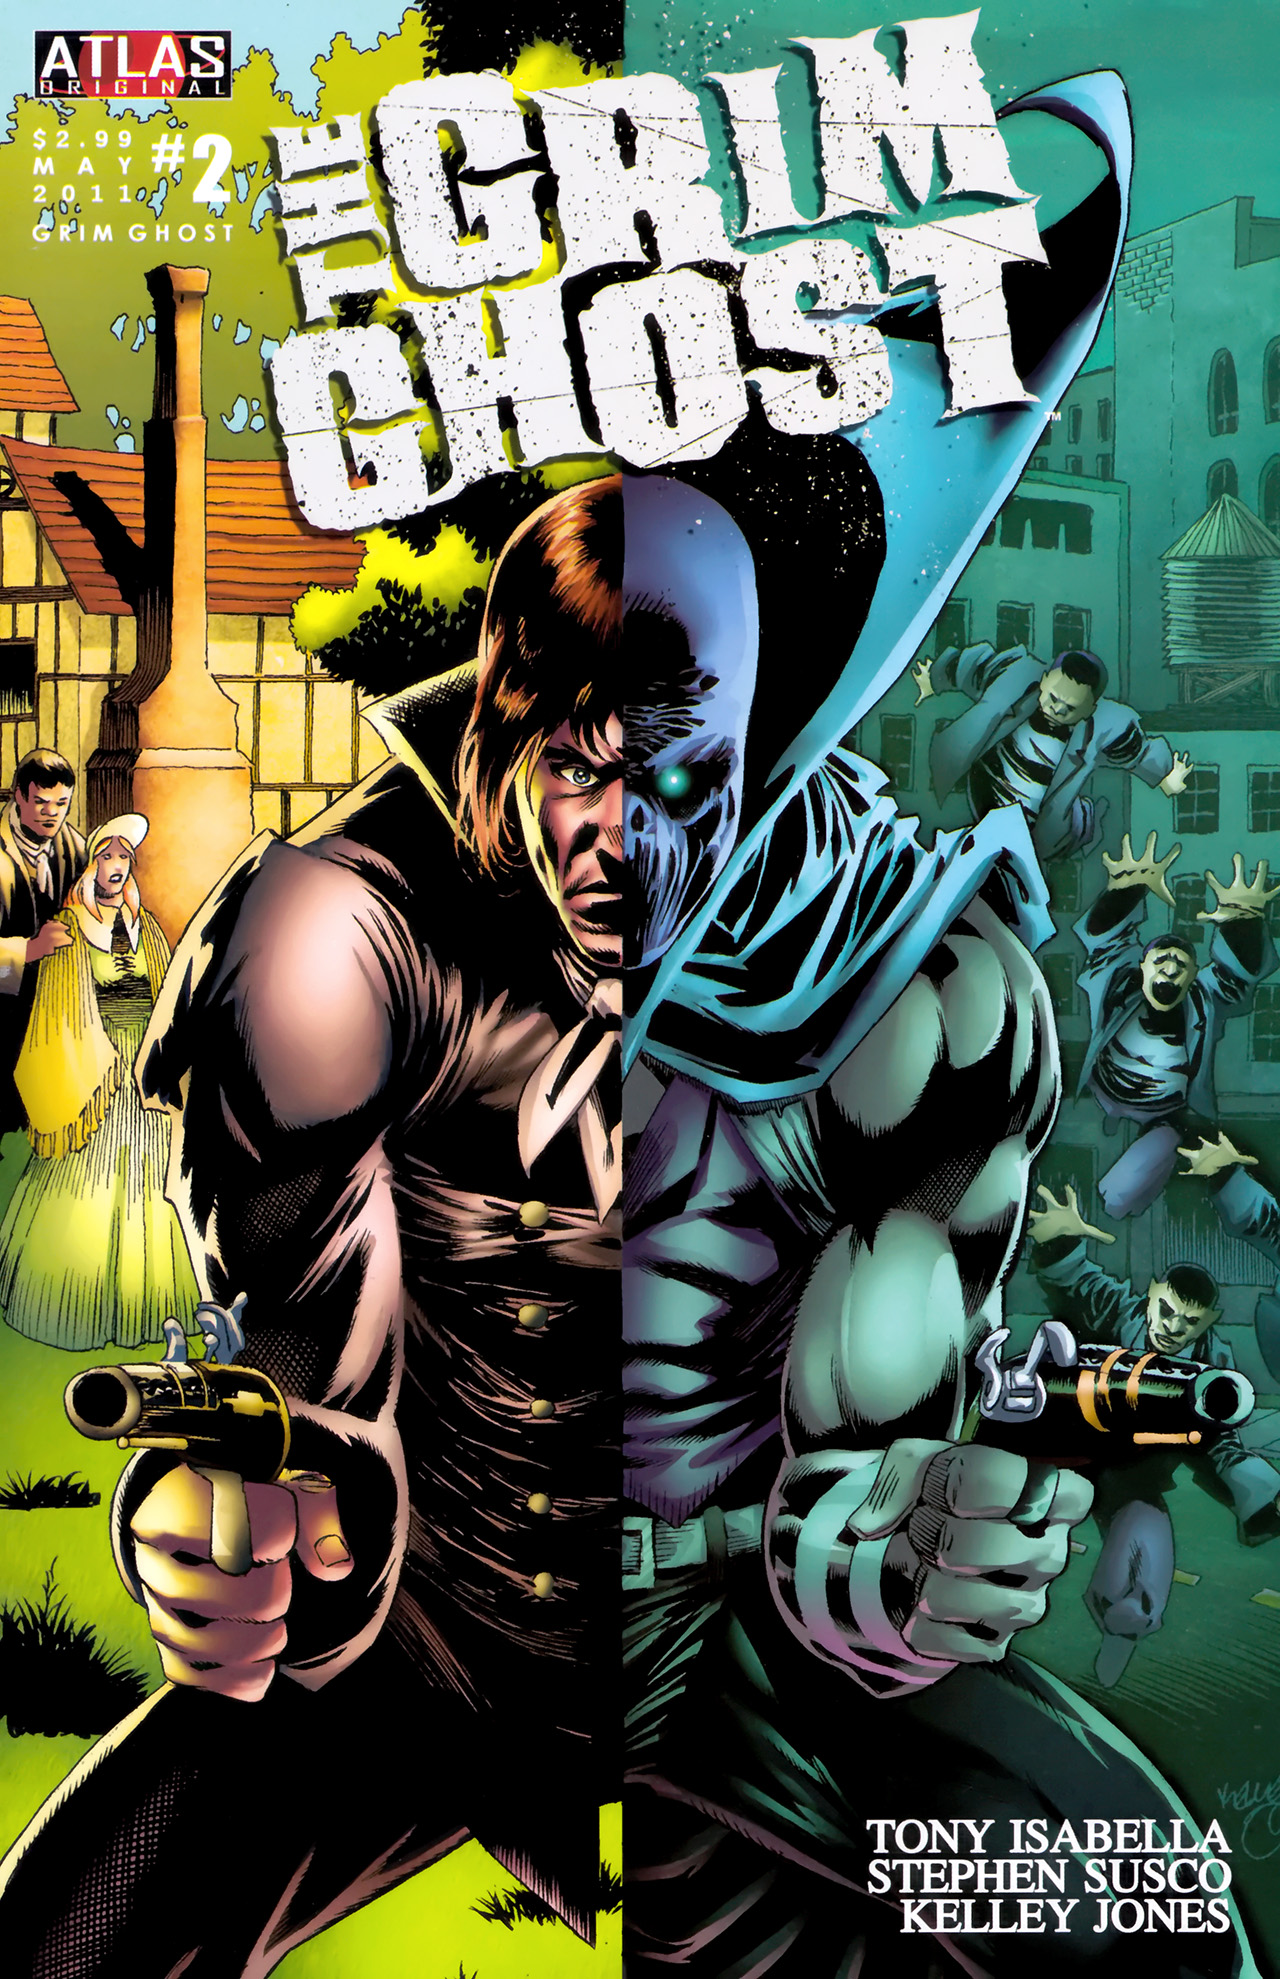 Read online The Grim Ghost comic -  Issue #2 - 1